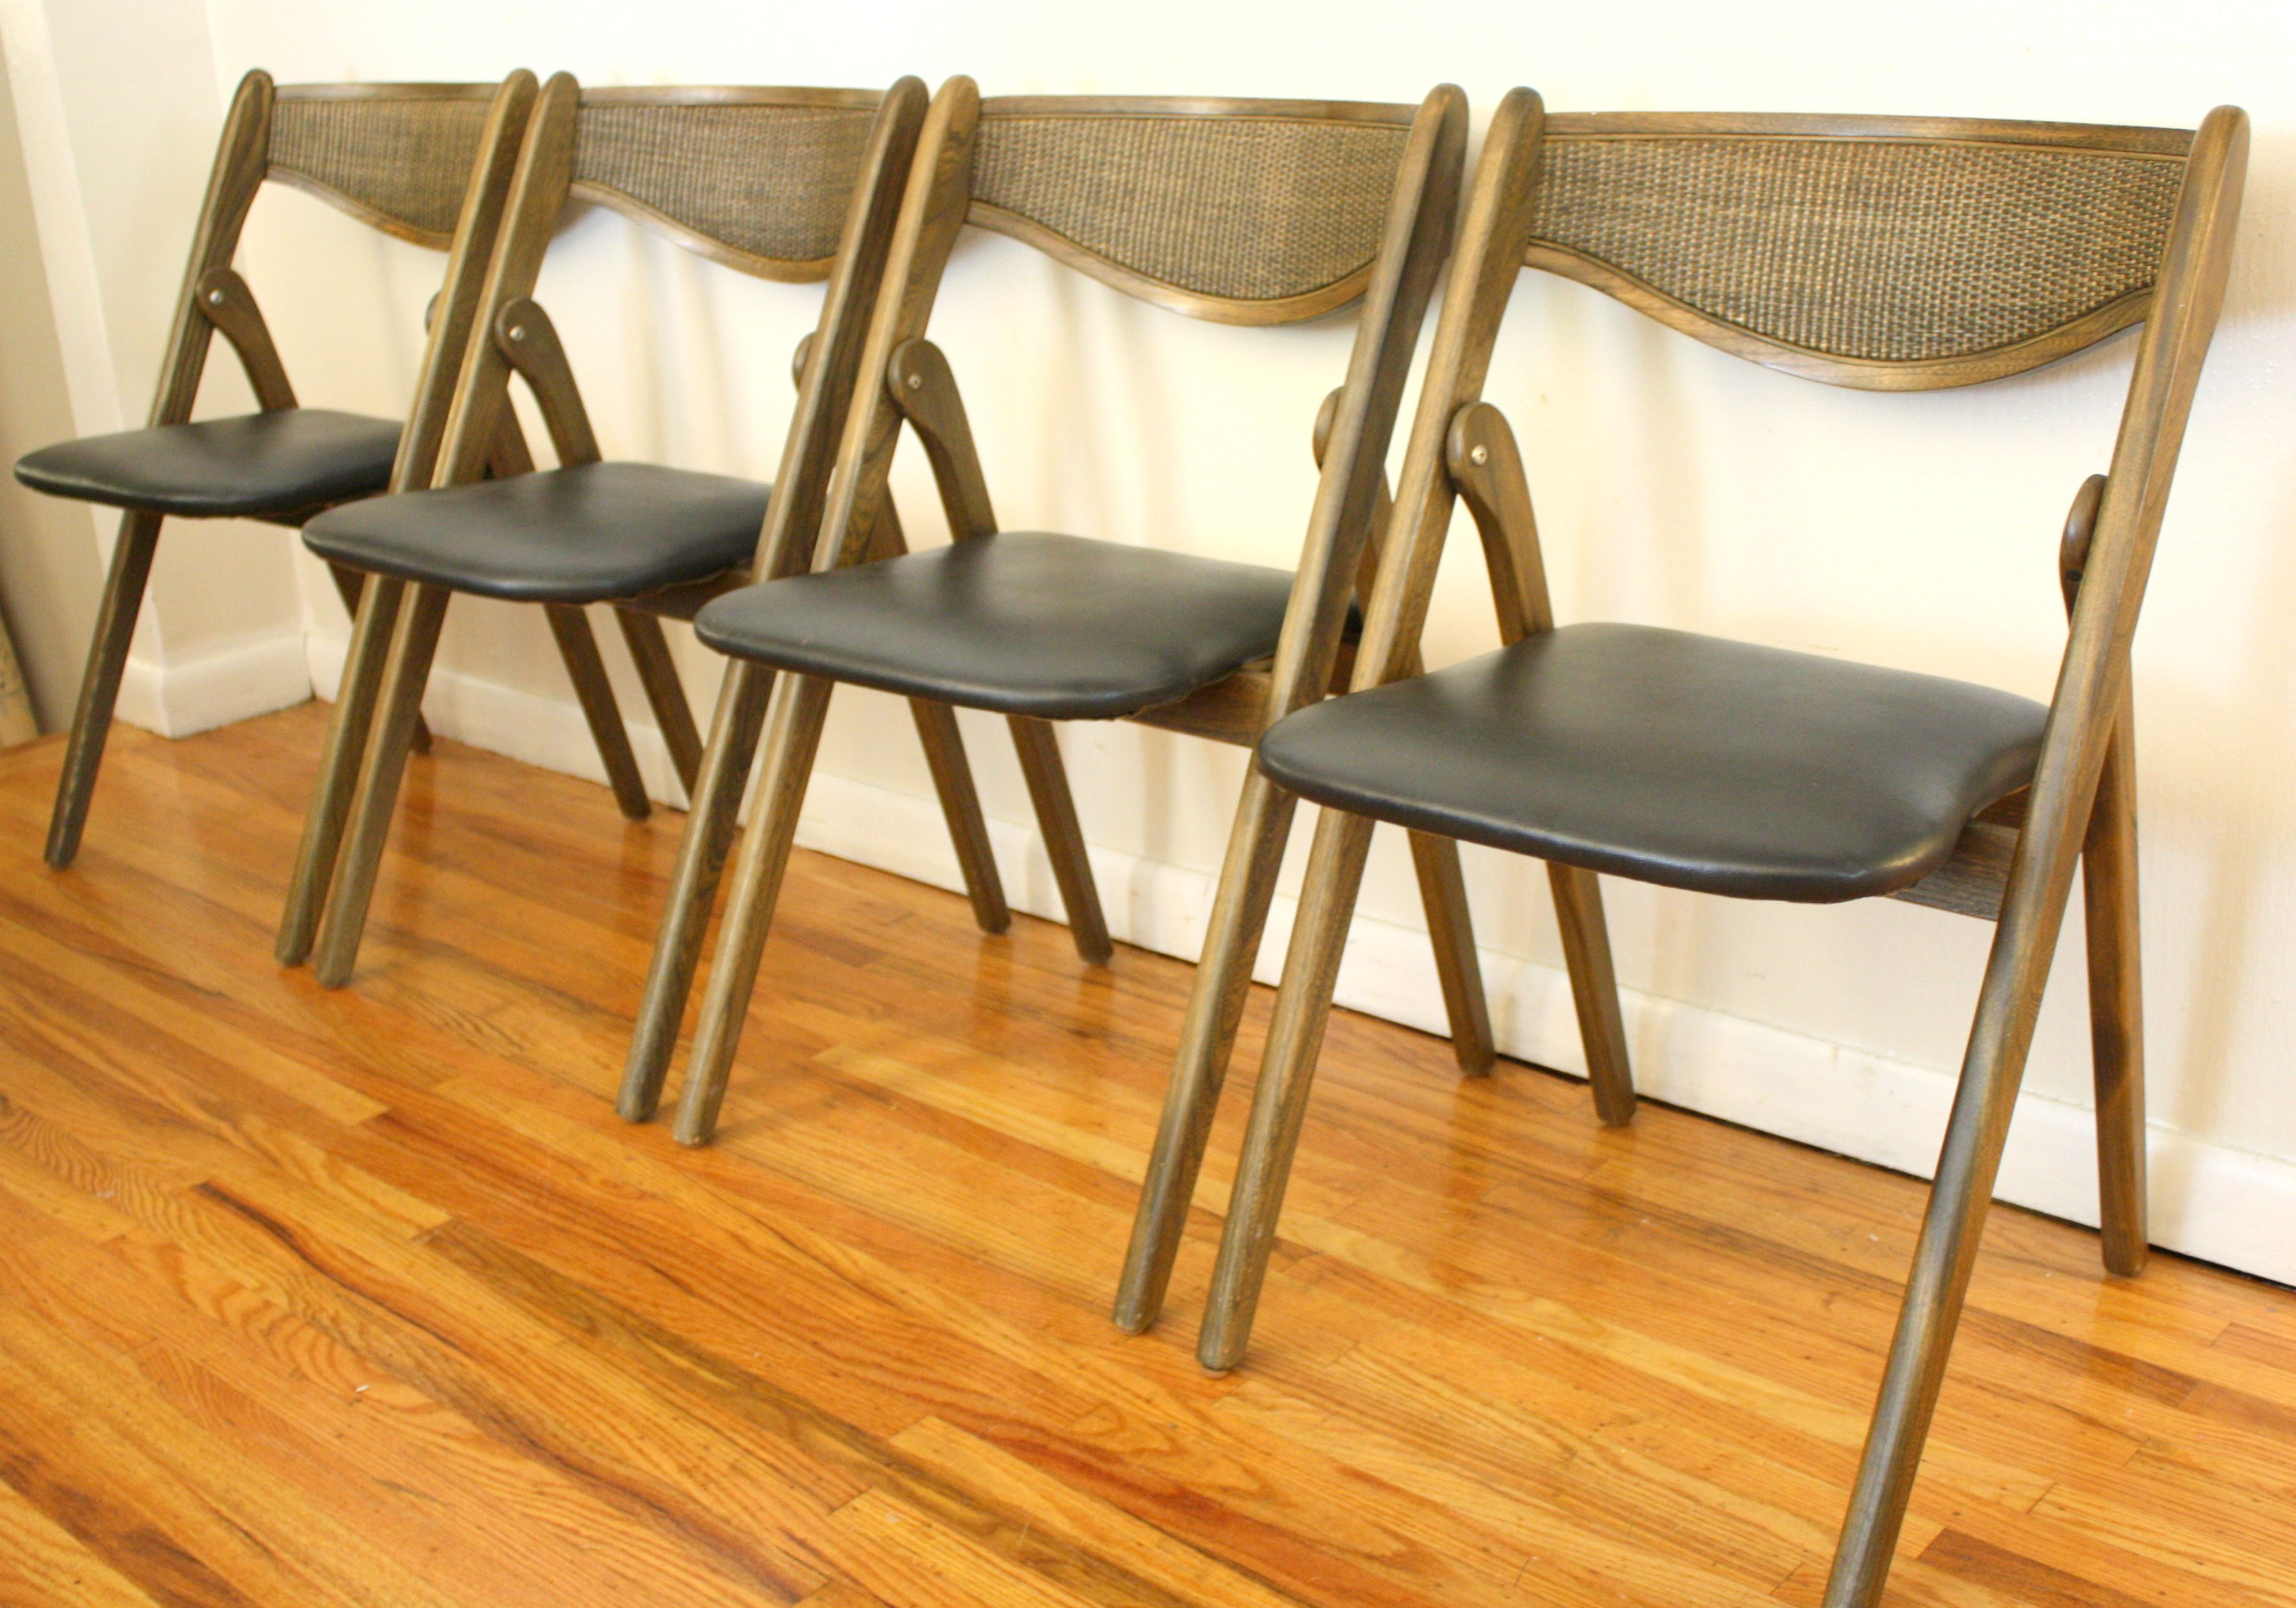 coronet folding chairs update dining room vintage mcm 4 available these are by they solid wood with vinyl seats and caned backs